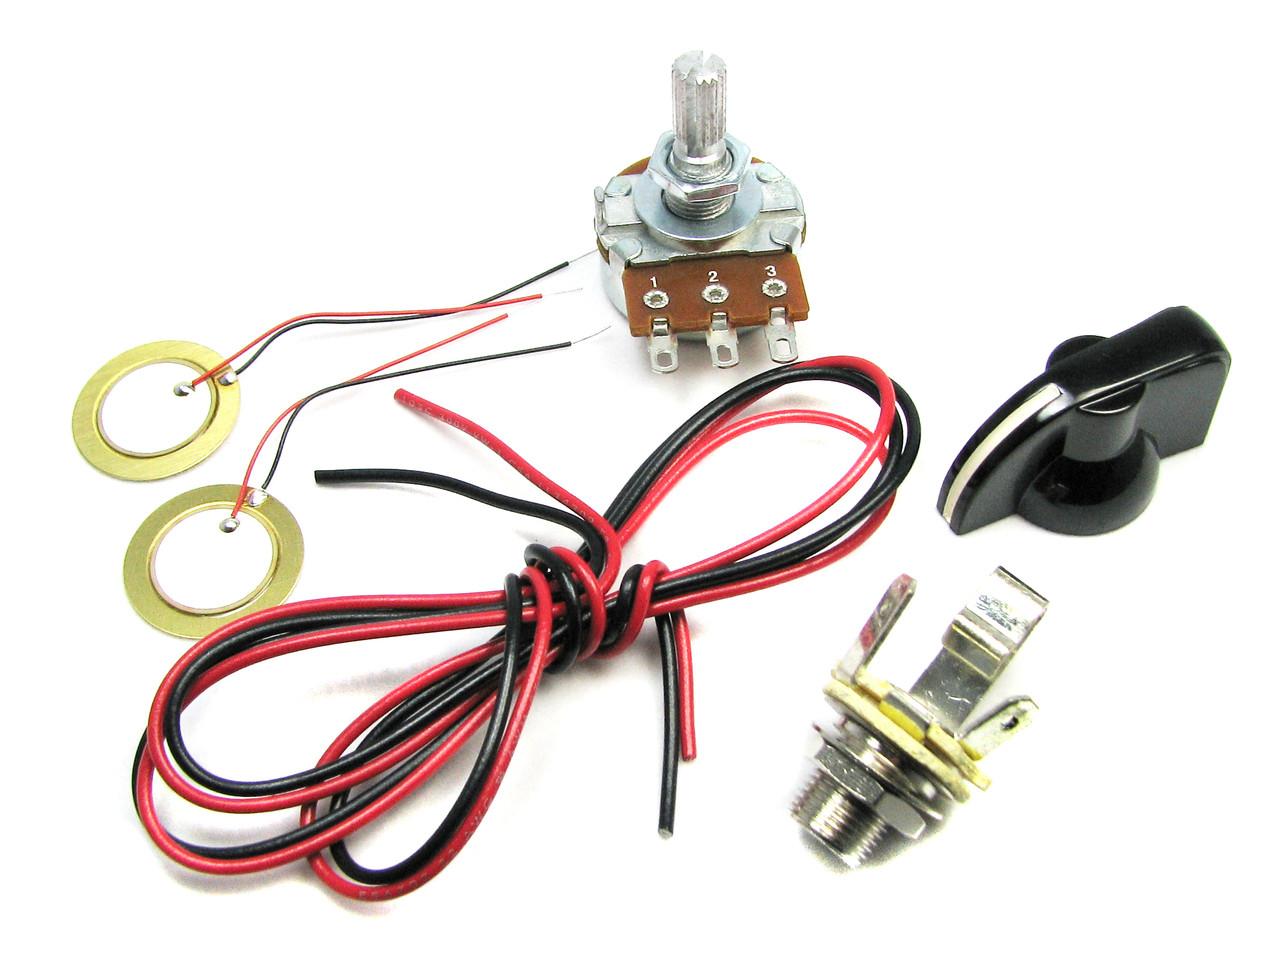 small resolution of basic piezo pickup kit for cigar box guitar instructions included